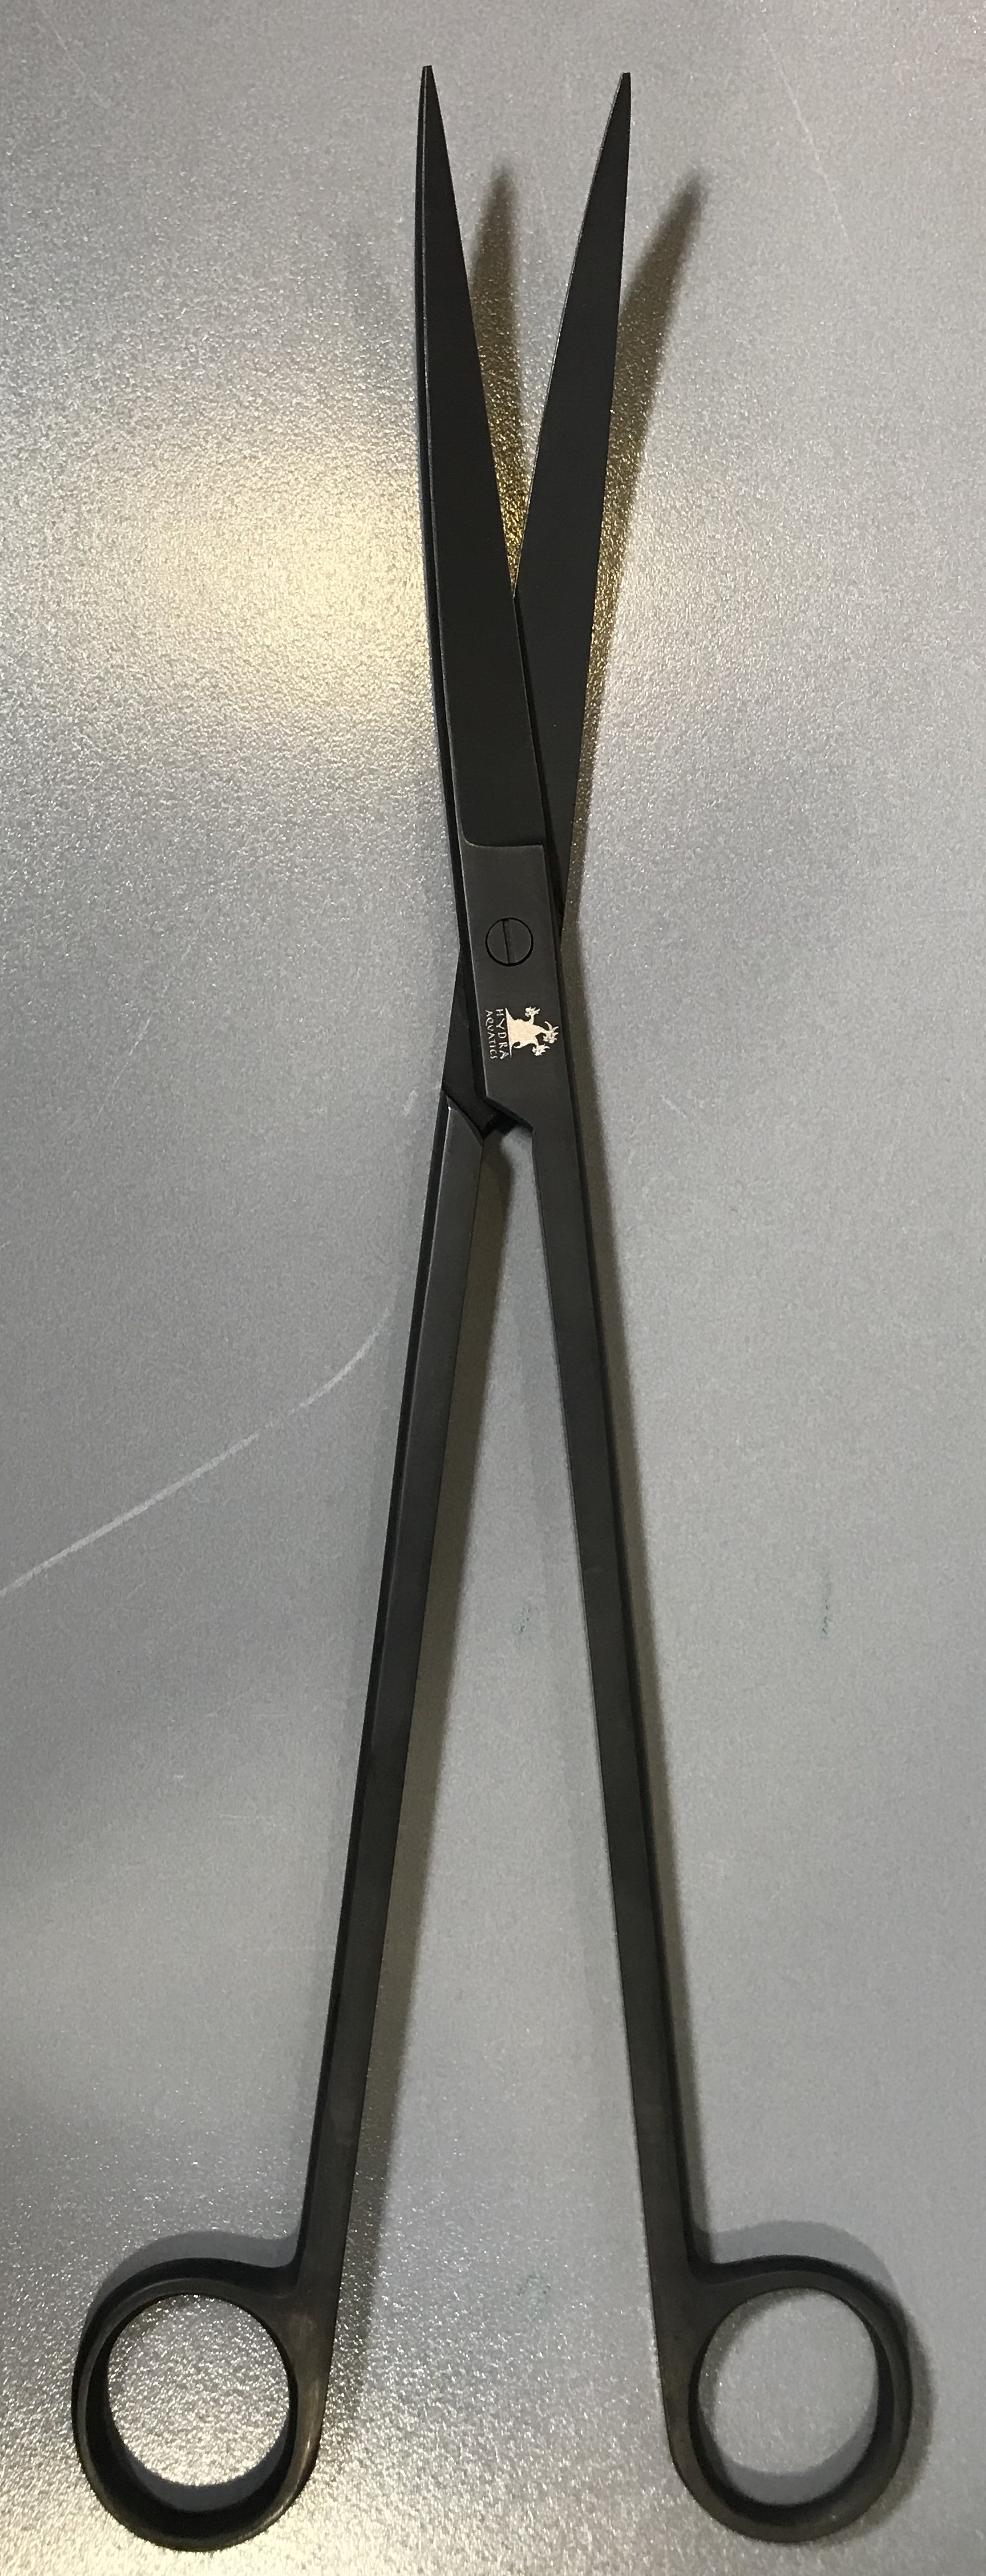 Curved Trimming Scissors - Black Oxide - 10